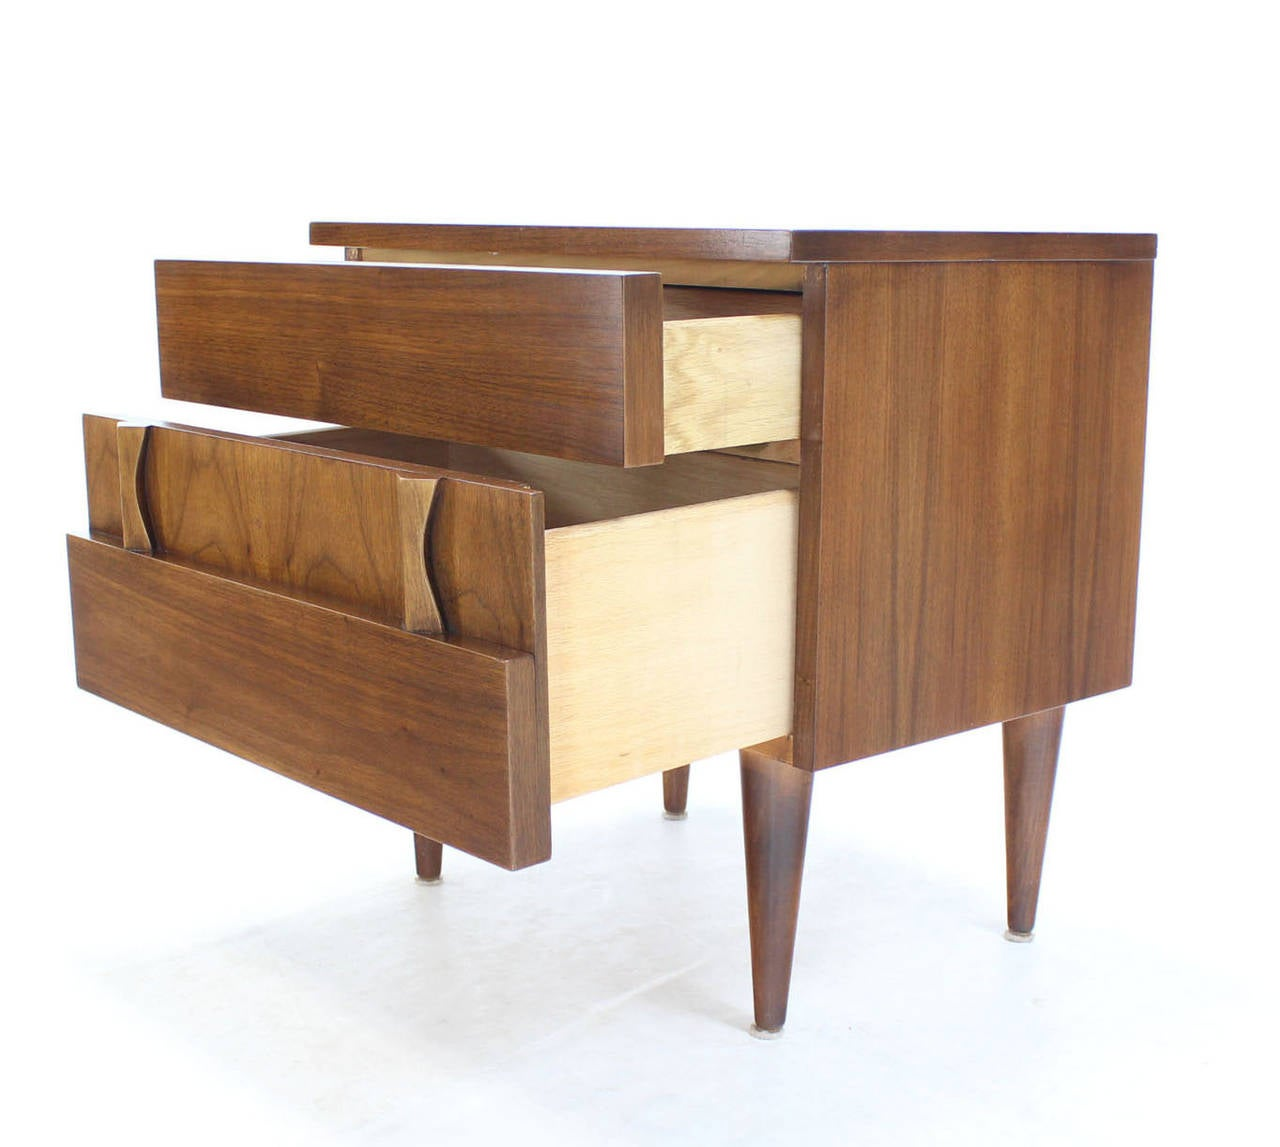 Very nice Danish modern walnut night stand. Excellent vintage condition.